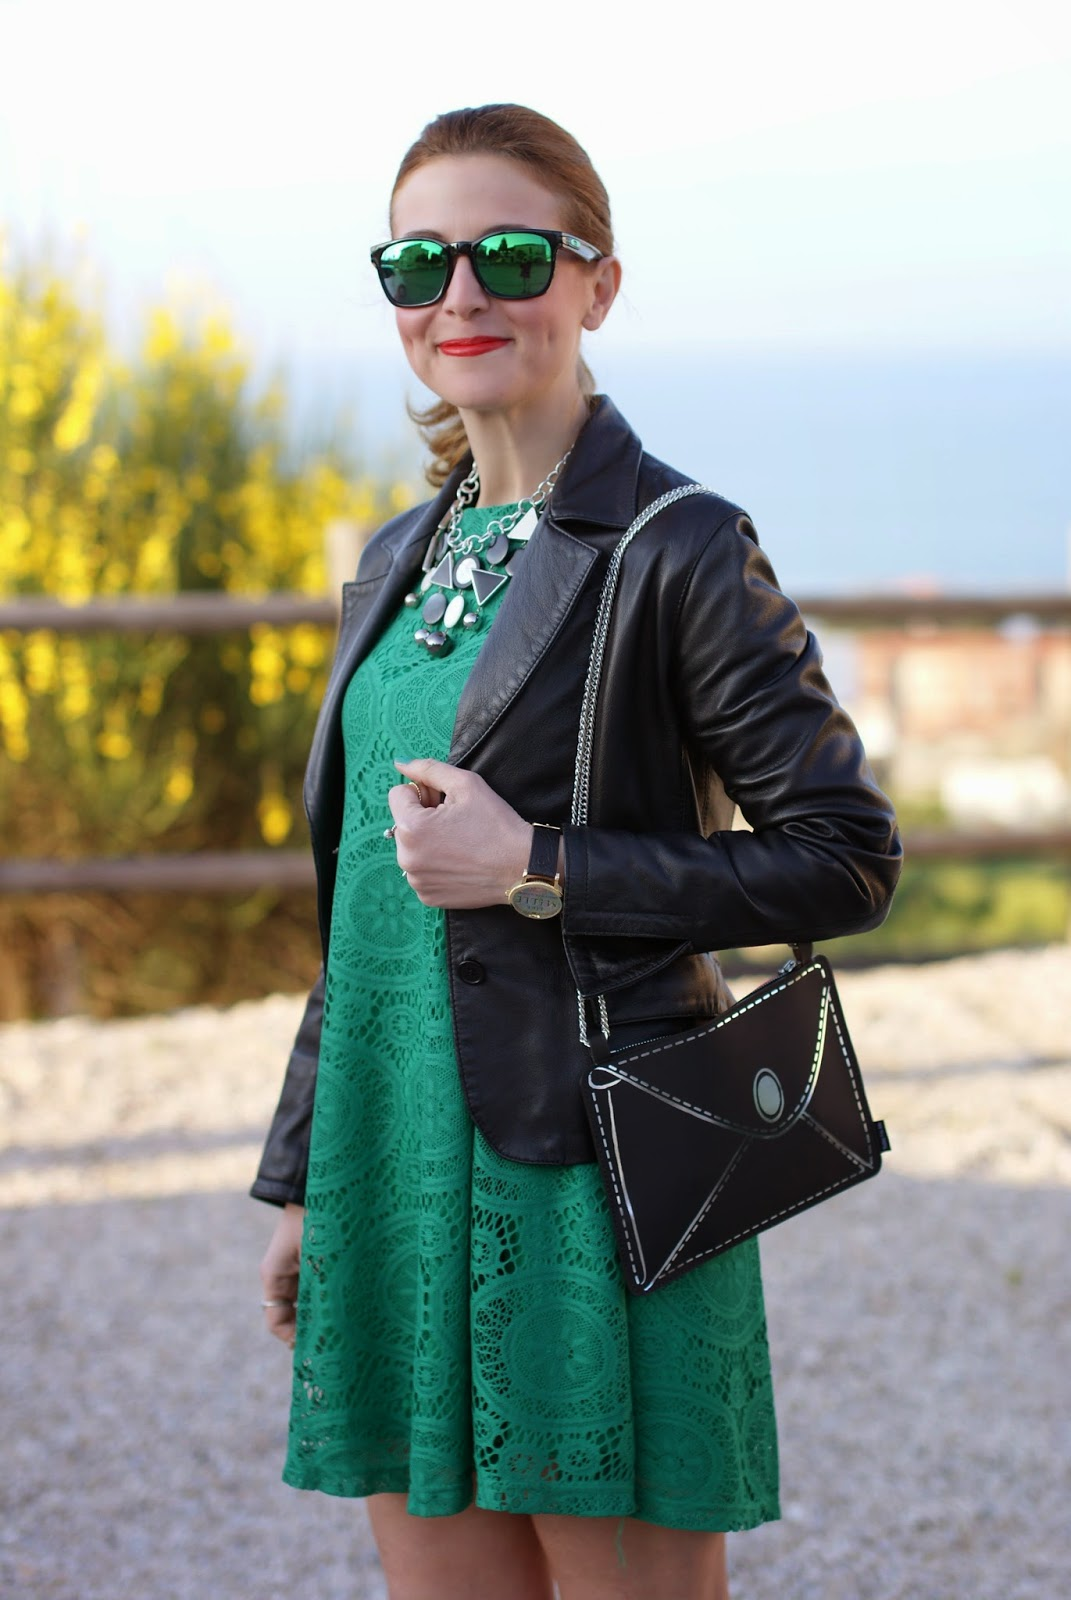 Vitti Ferria Contin jewelry, Today I'm me evening bag, millelire watch, Sheinside green dress, Fashion and Cookies, fashion blogger